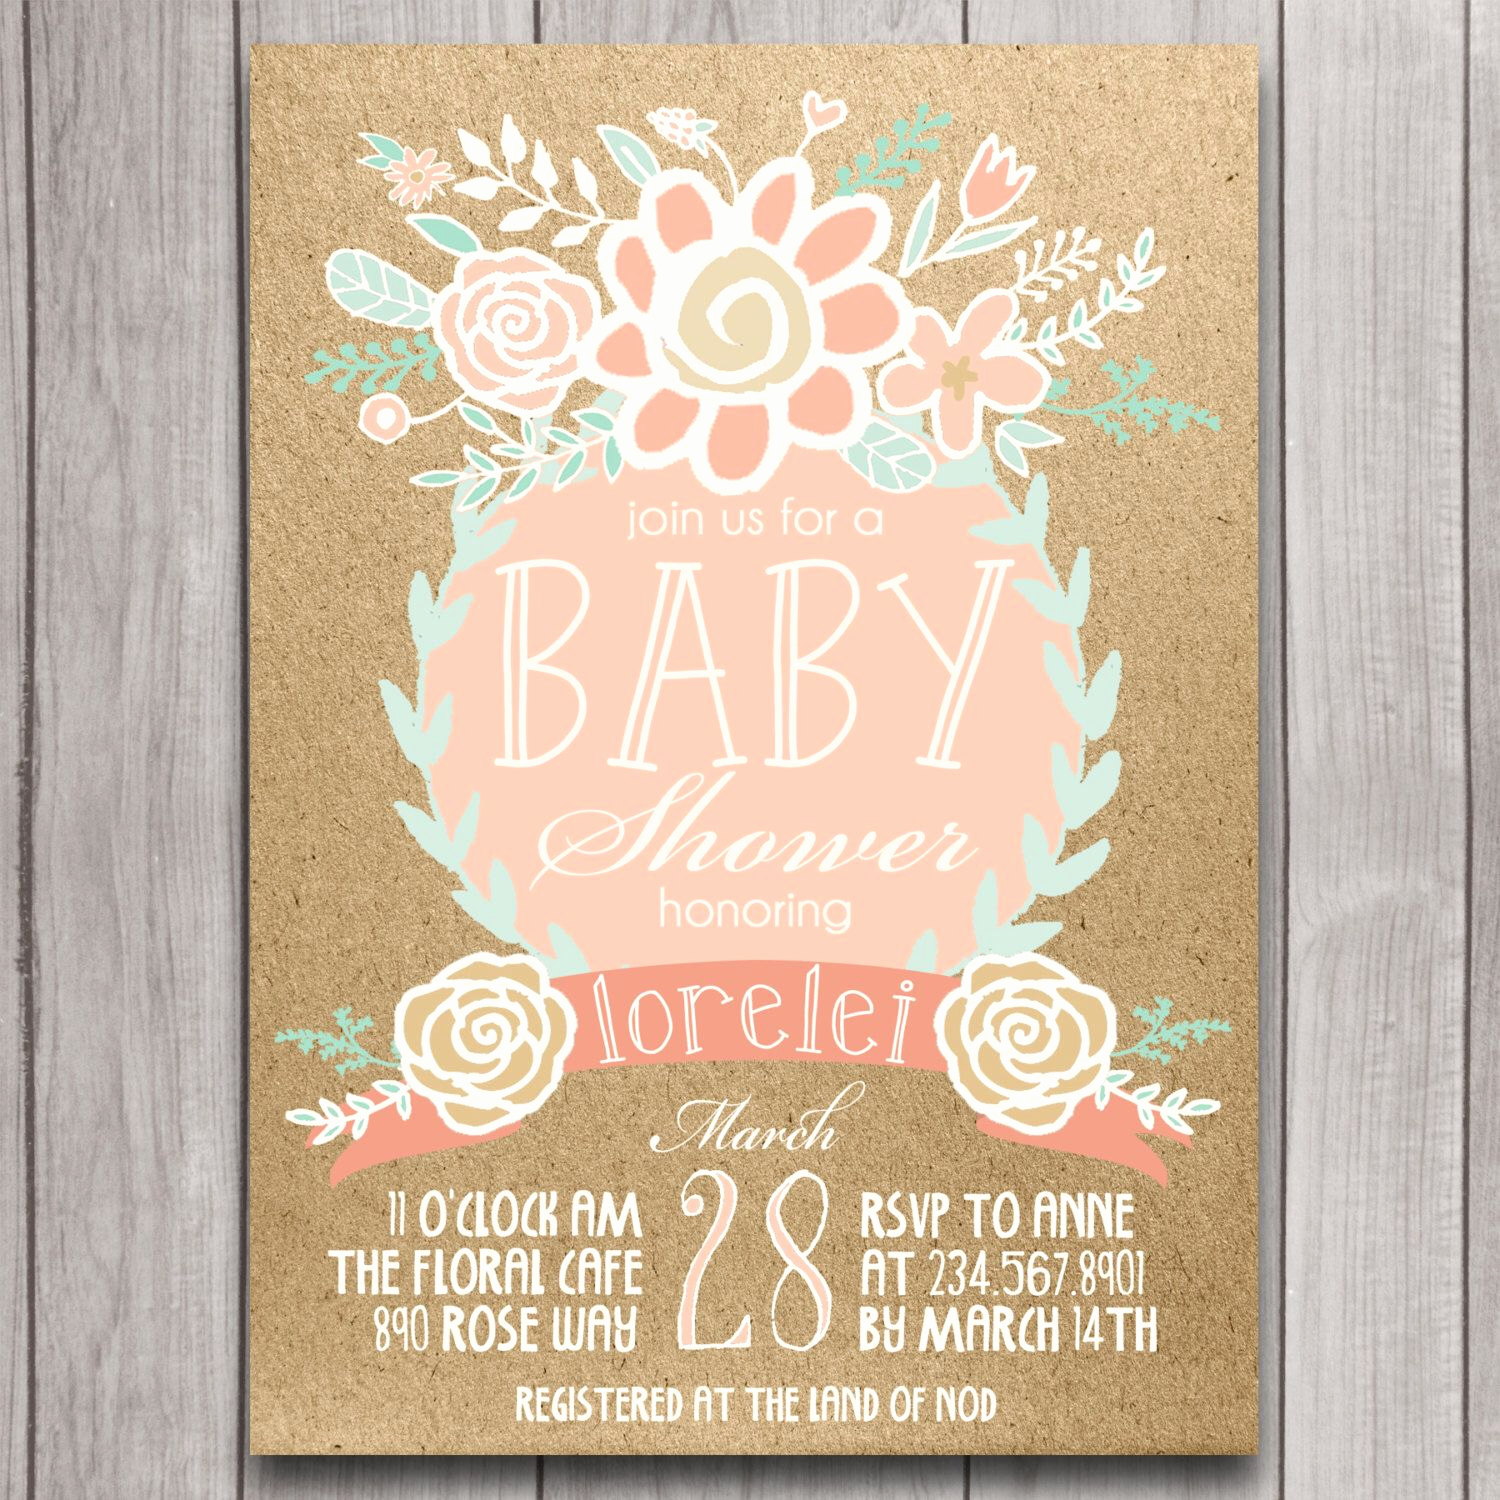 Boho Baby Shower Invitation Lovely Boho Baby Shower Invitation Printable Coral Mint Gold